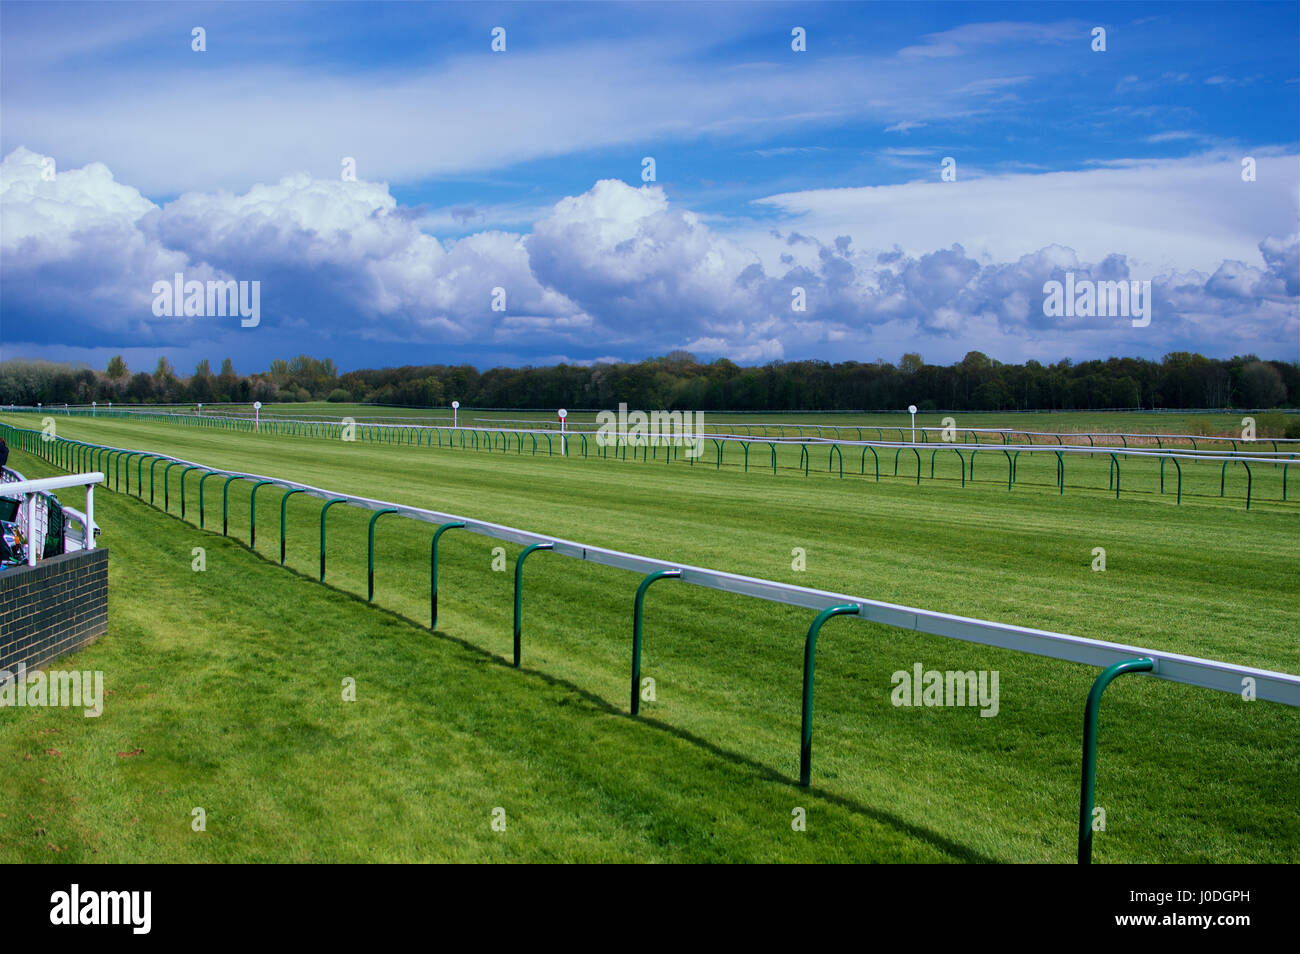 Horse race track - Stock Image